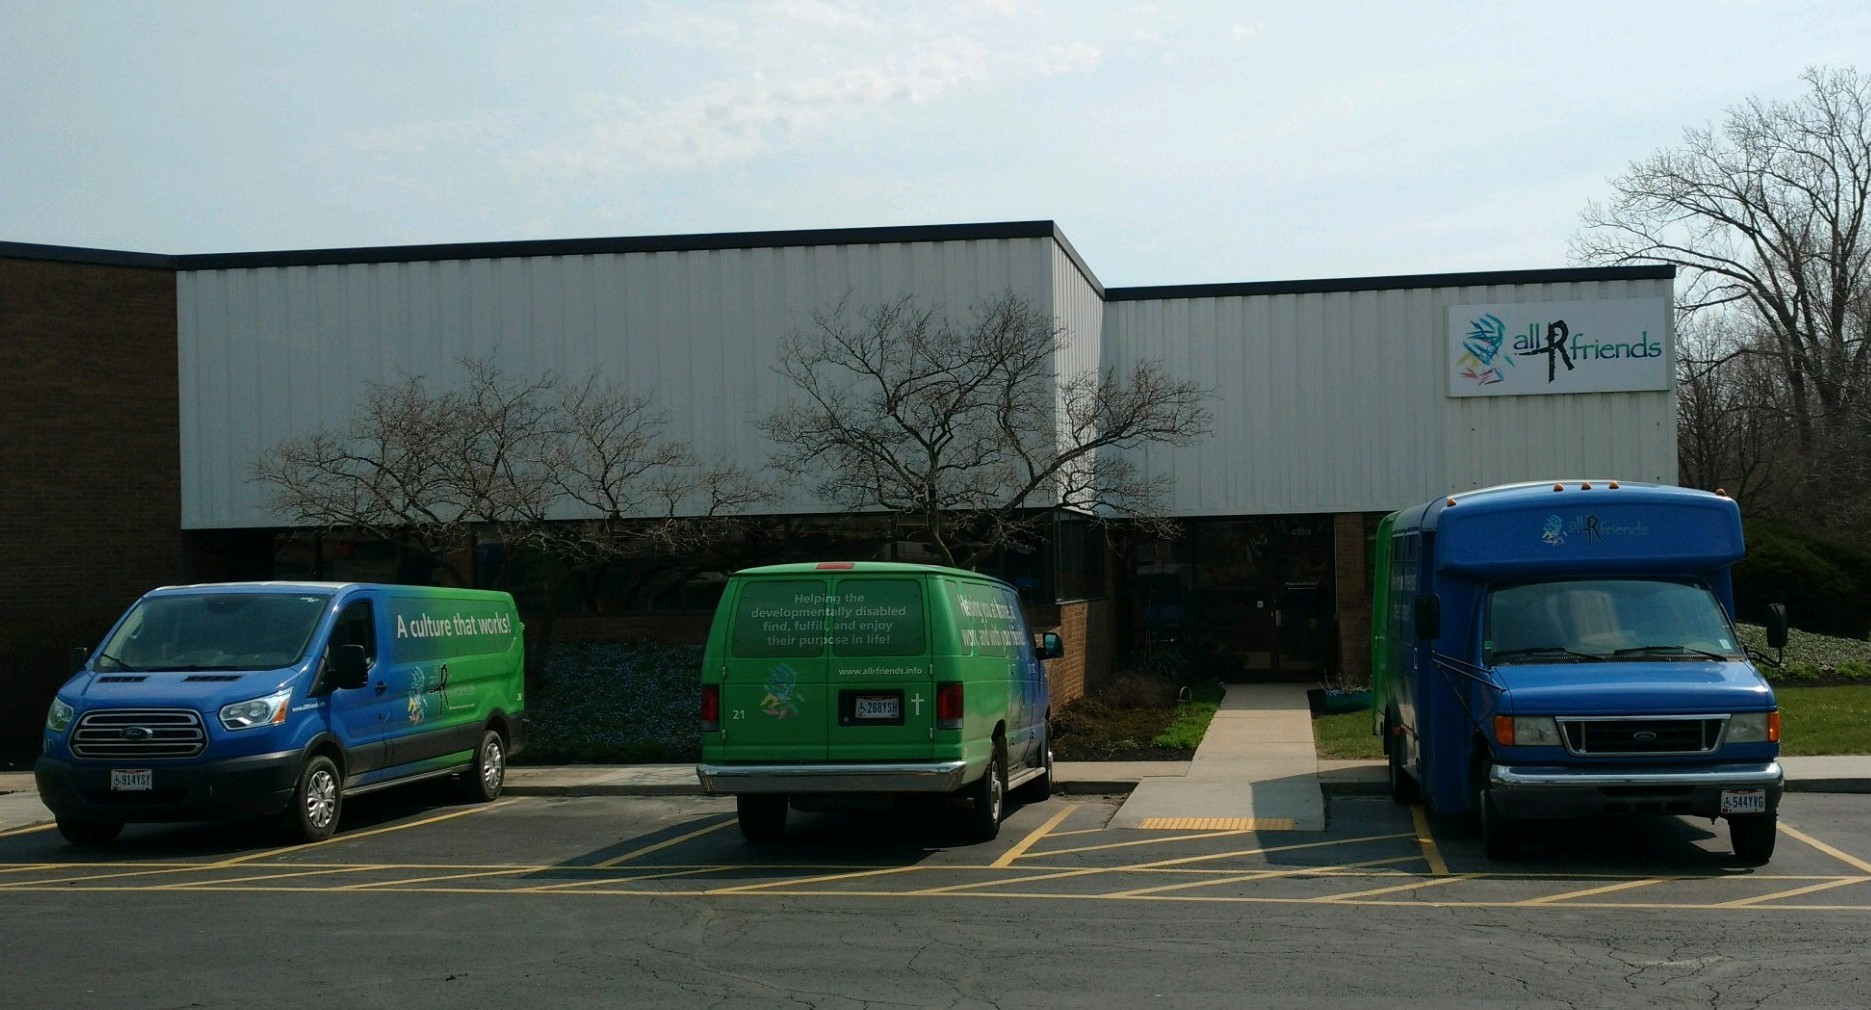 Upper Arlington site image